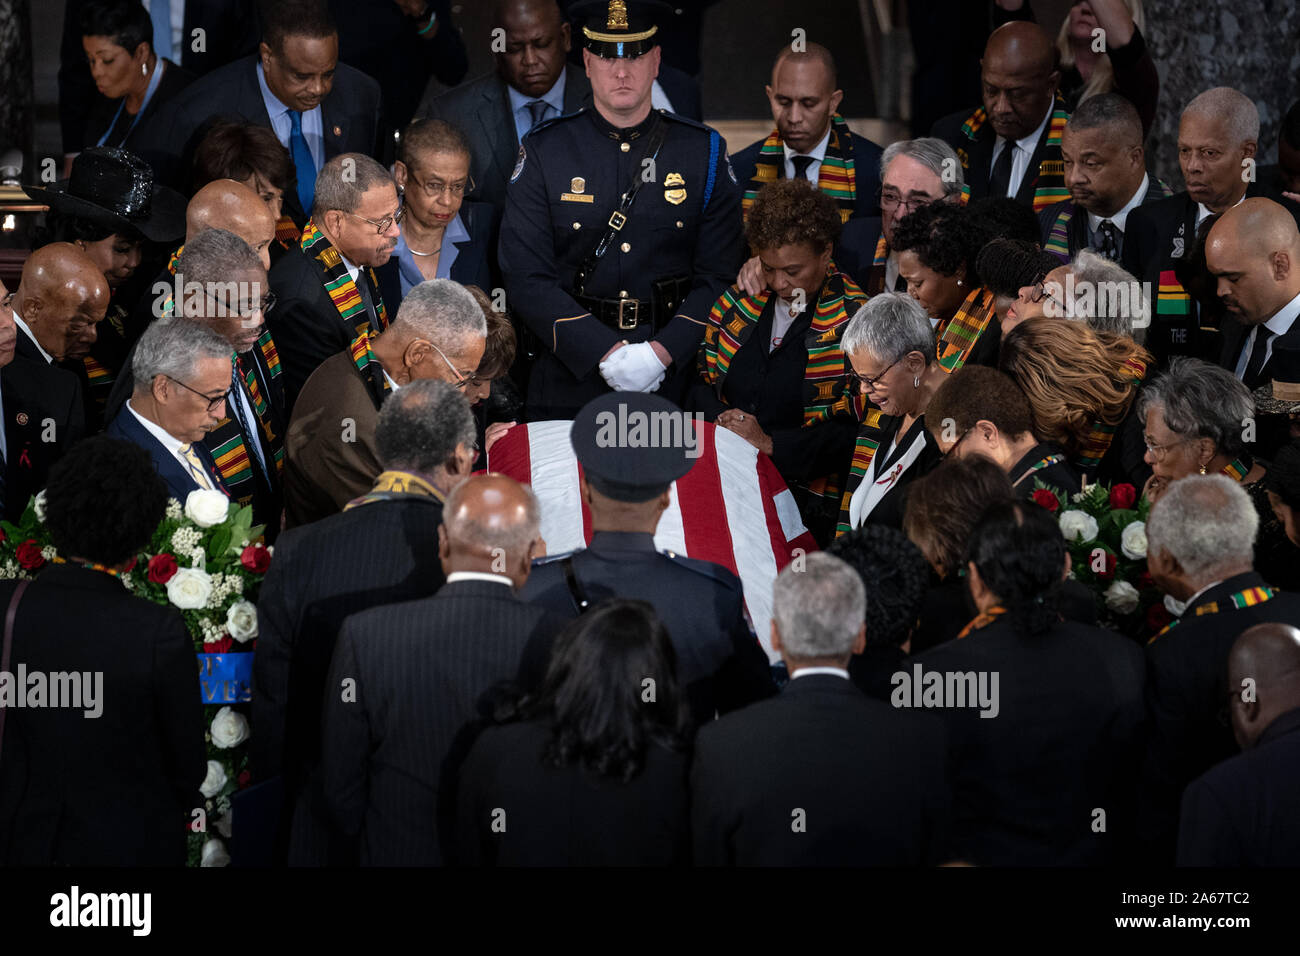 Washington, United States. 24th Oct, 2019. Members of the Congressional Black Caucus gather around the casket at a memorial service for late Maryland Representative Elijah Cummings in National Statuary Hall at the U.S. Capitol in Washington, DC on Thursday, October 24, 2019. Cummings died at the age of 68 on October 17 due to complications concerning long-standing health challenges. Pool Photo by Erin Schaff/UPI Credit: UPI/Alamy Live News Stock Photo